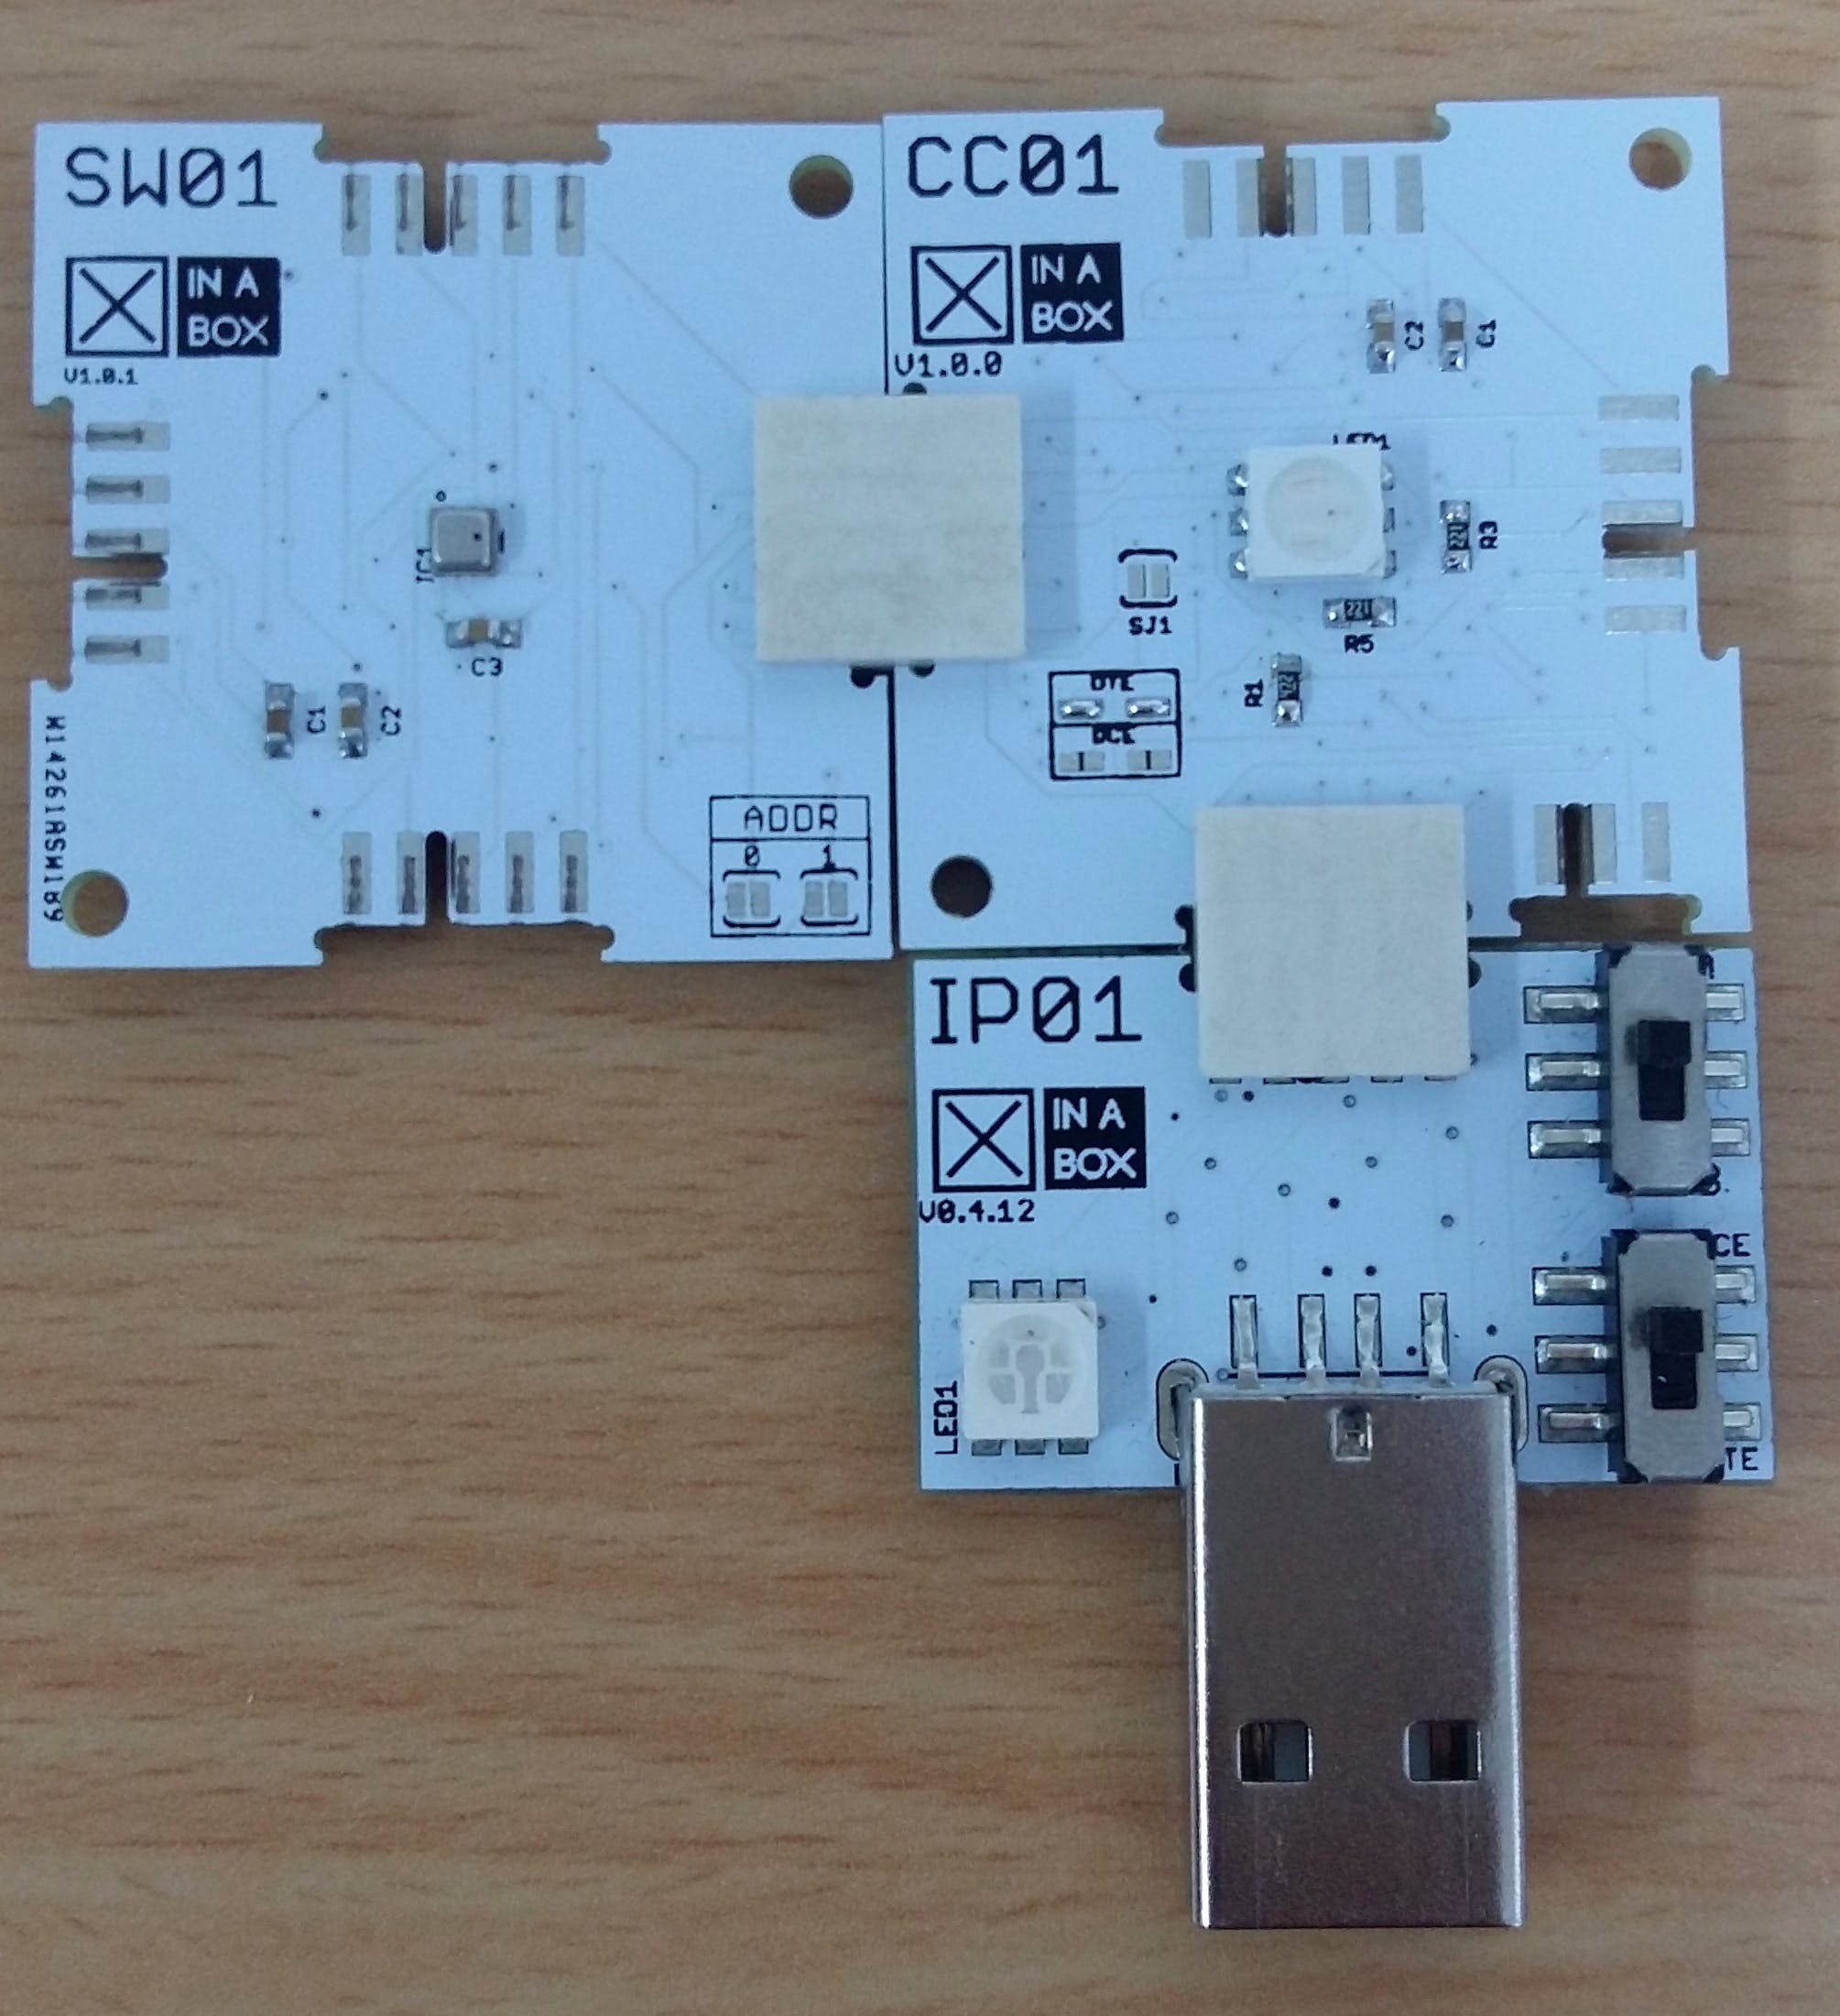 Figure 3: Connected IP01,CC01 and SW01.